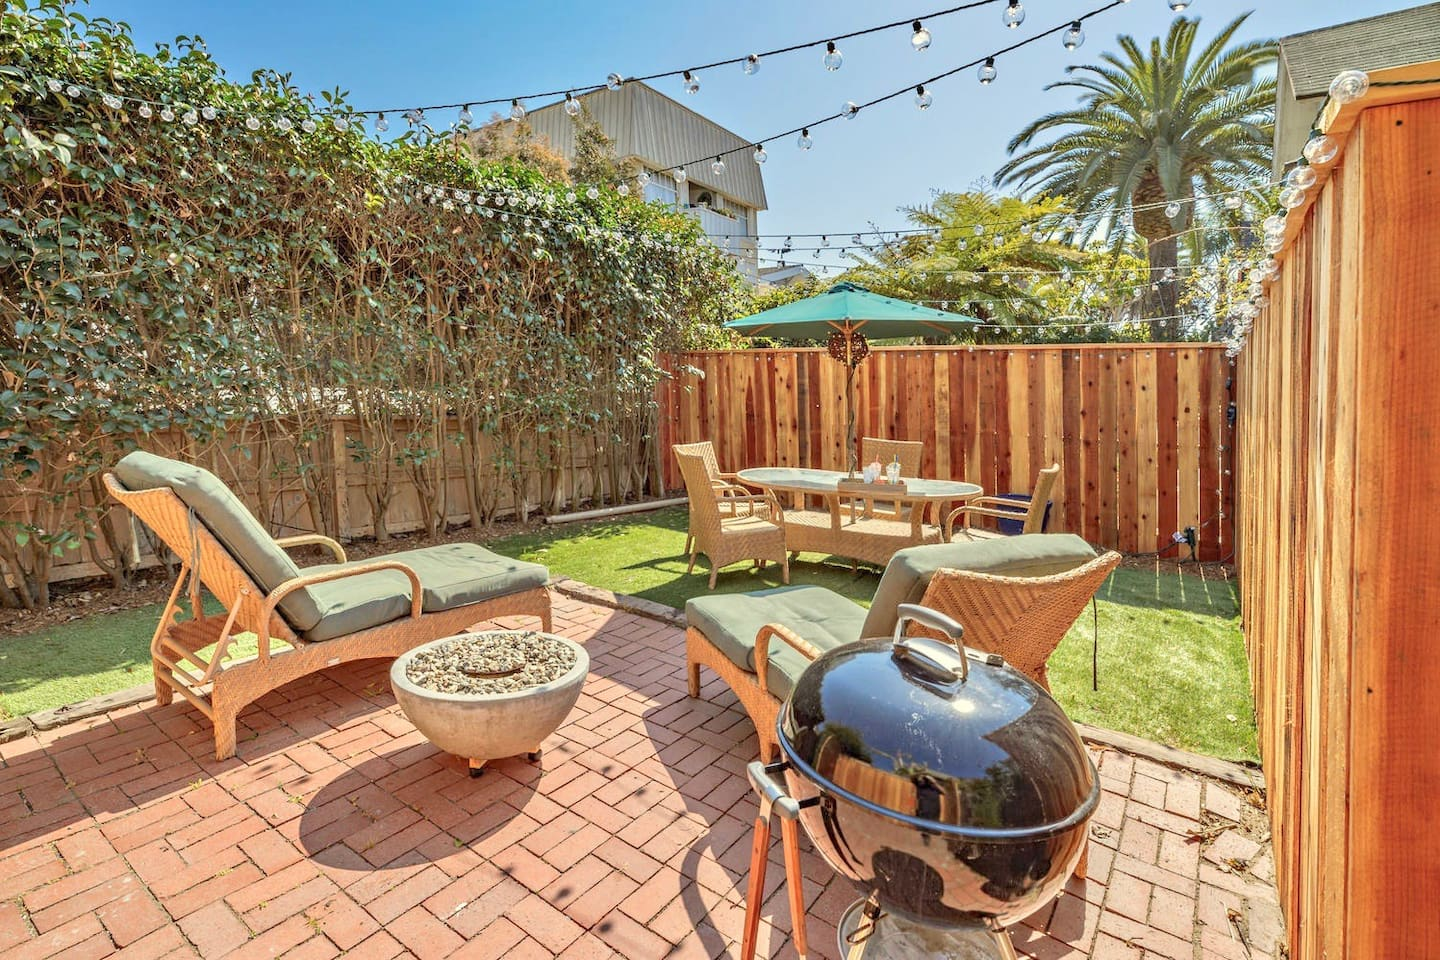 Enjoy this large private backyard like it's a second living room, for your unit only. Fire pit, and BBQ